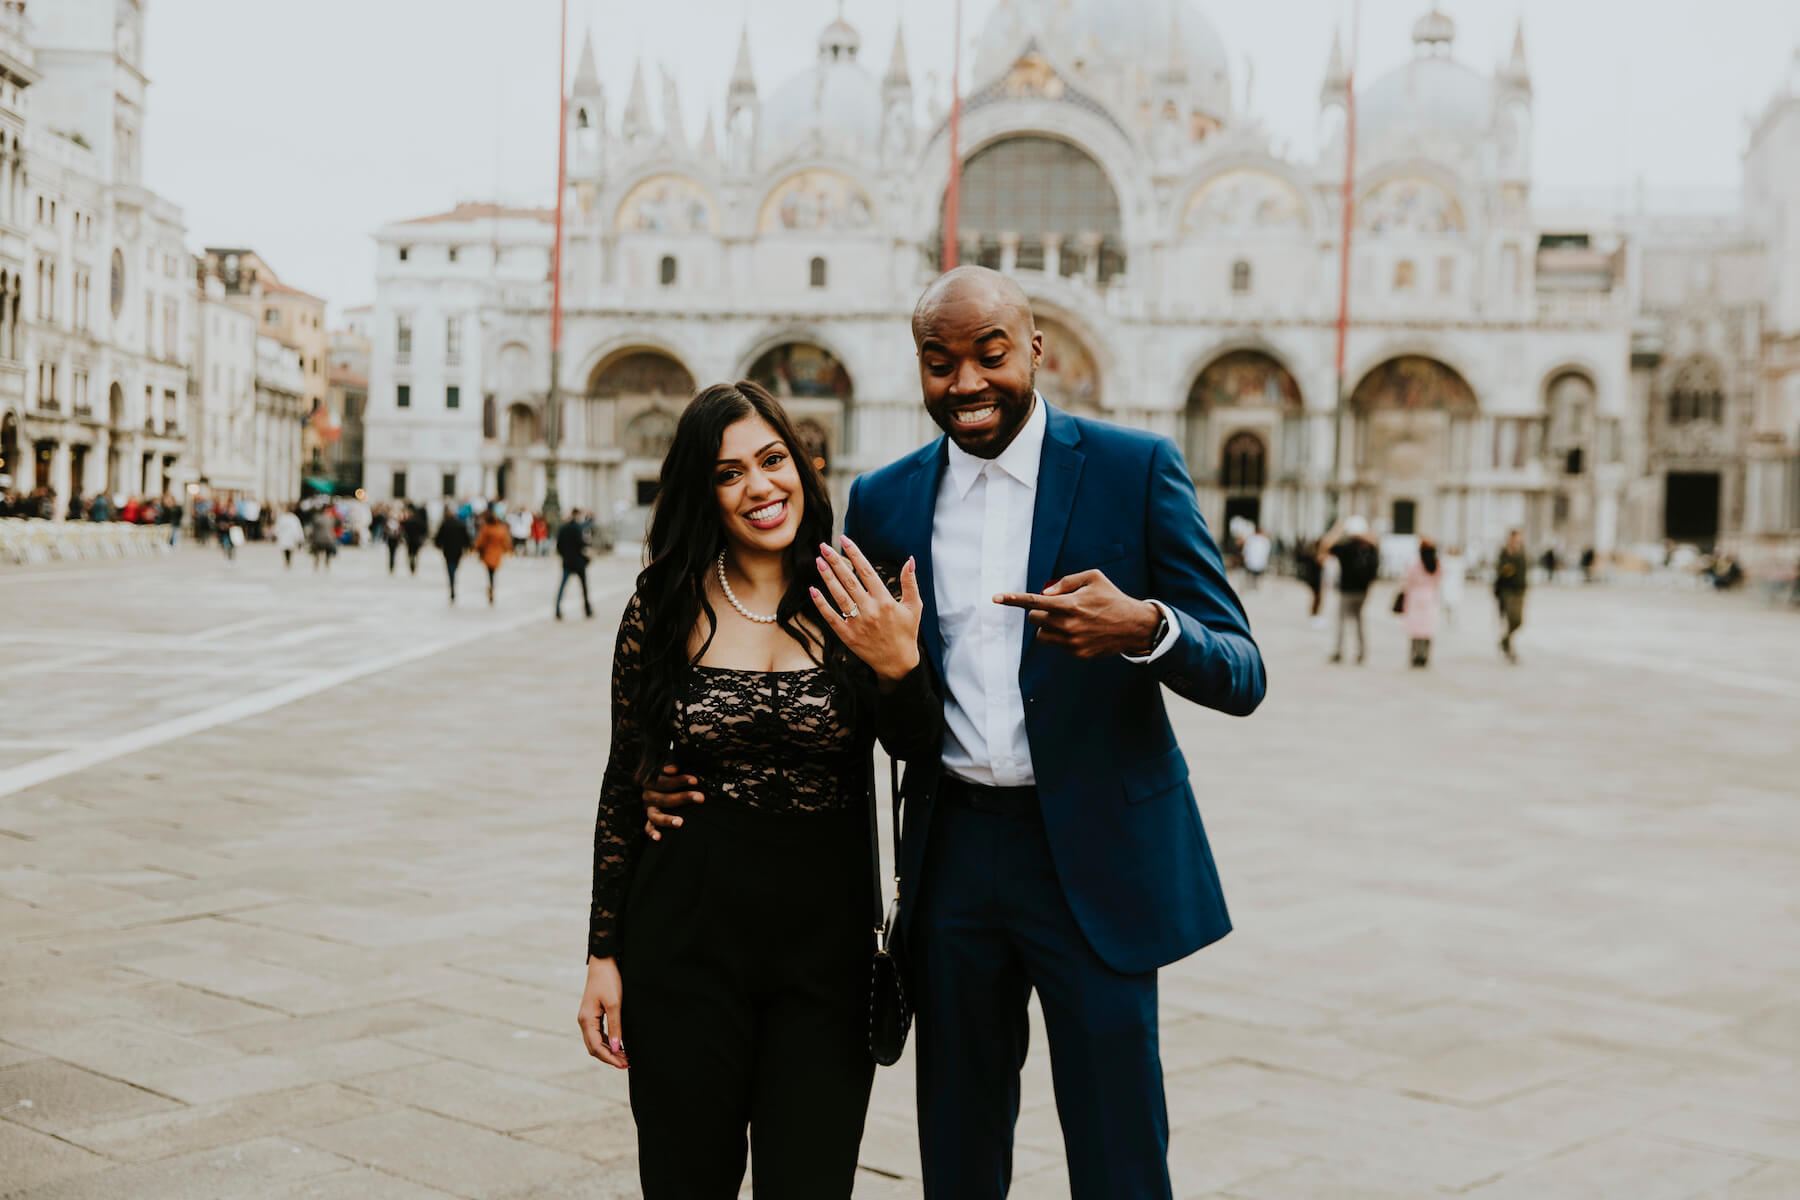 Couple proposal in Venice, Italy